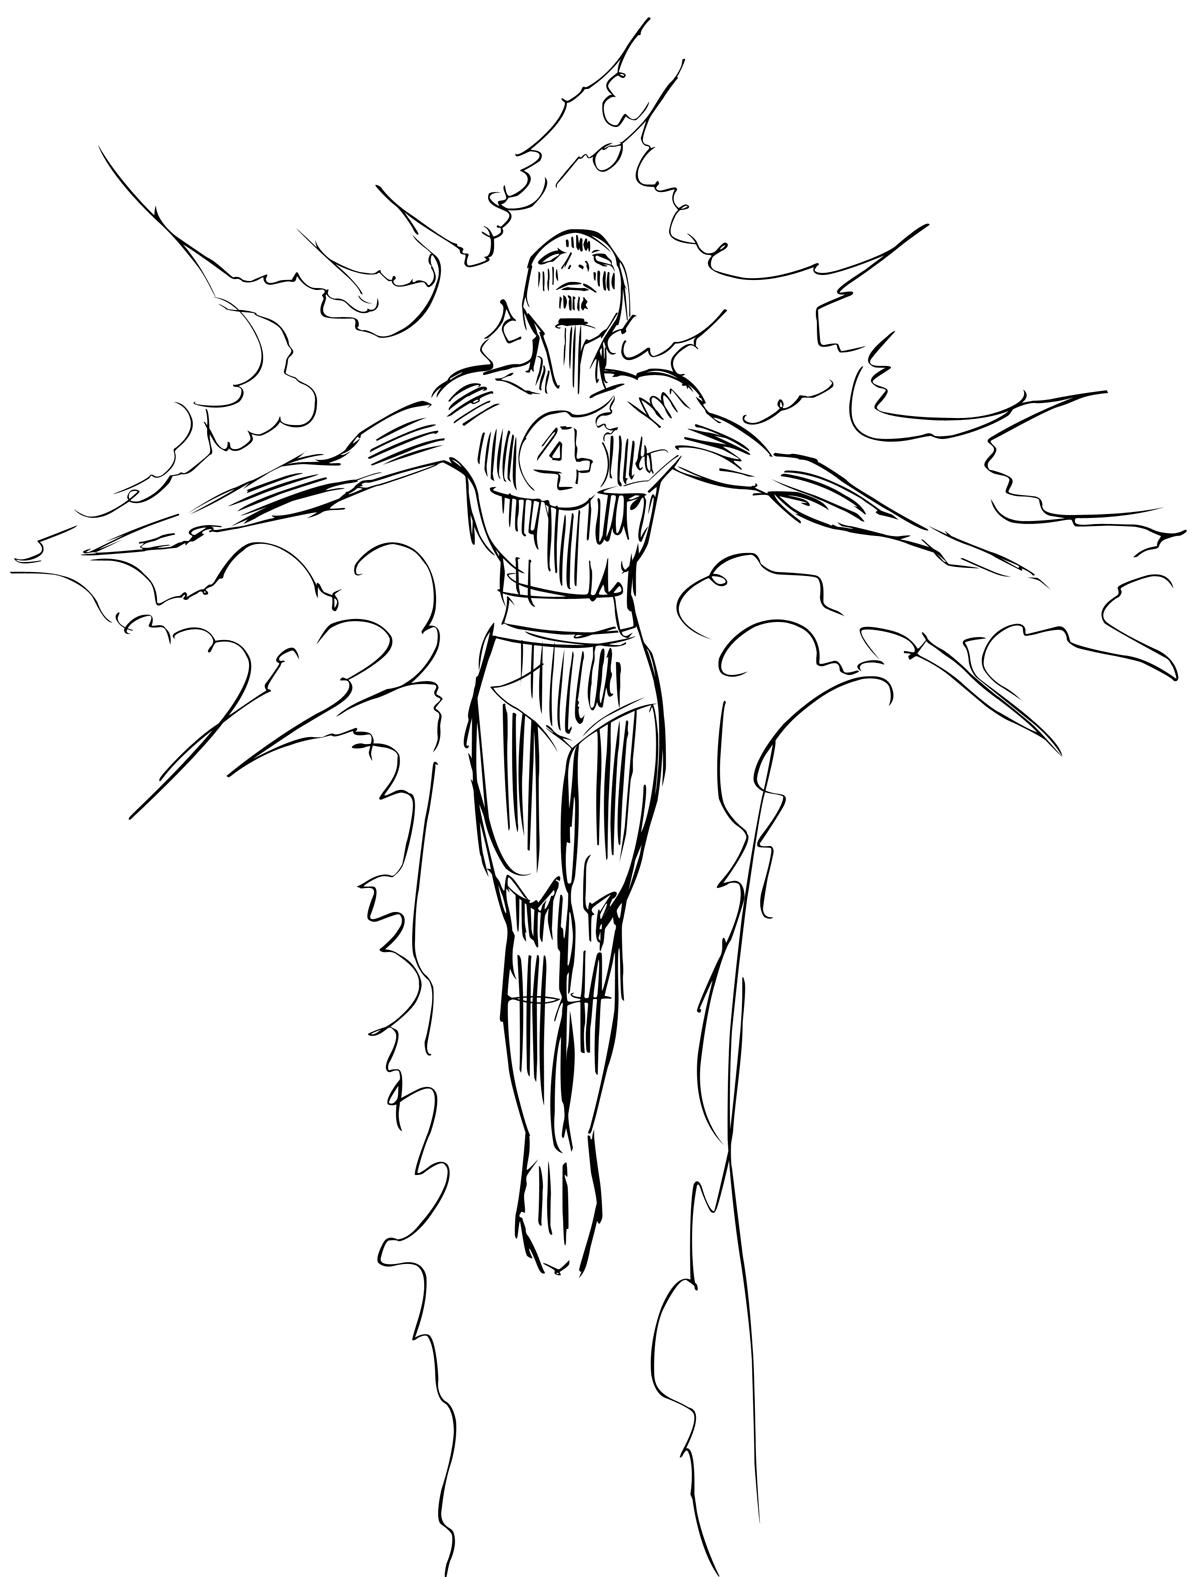 Coloring Pages Human Torch Coloring Pages human torch coloring pages eassume com eassume